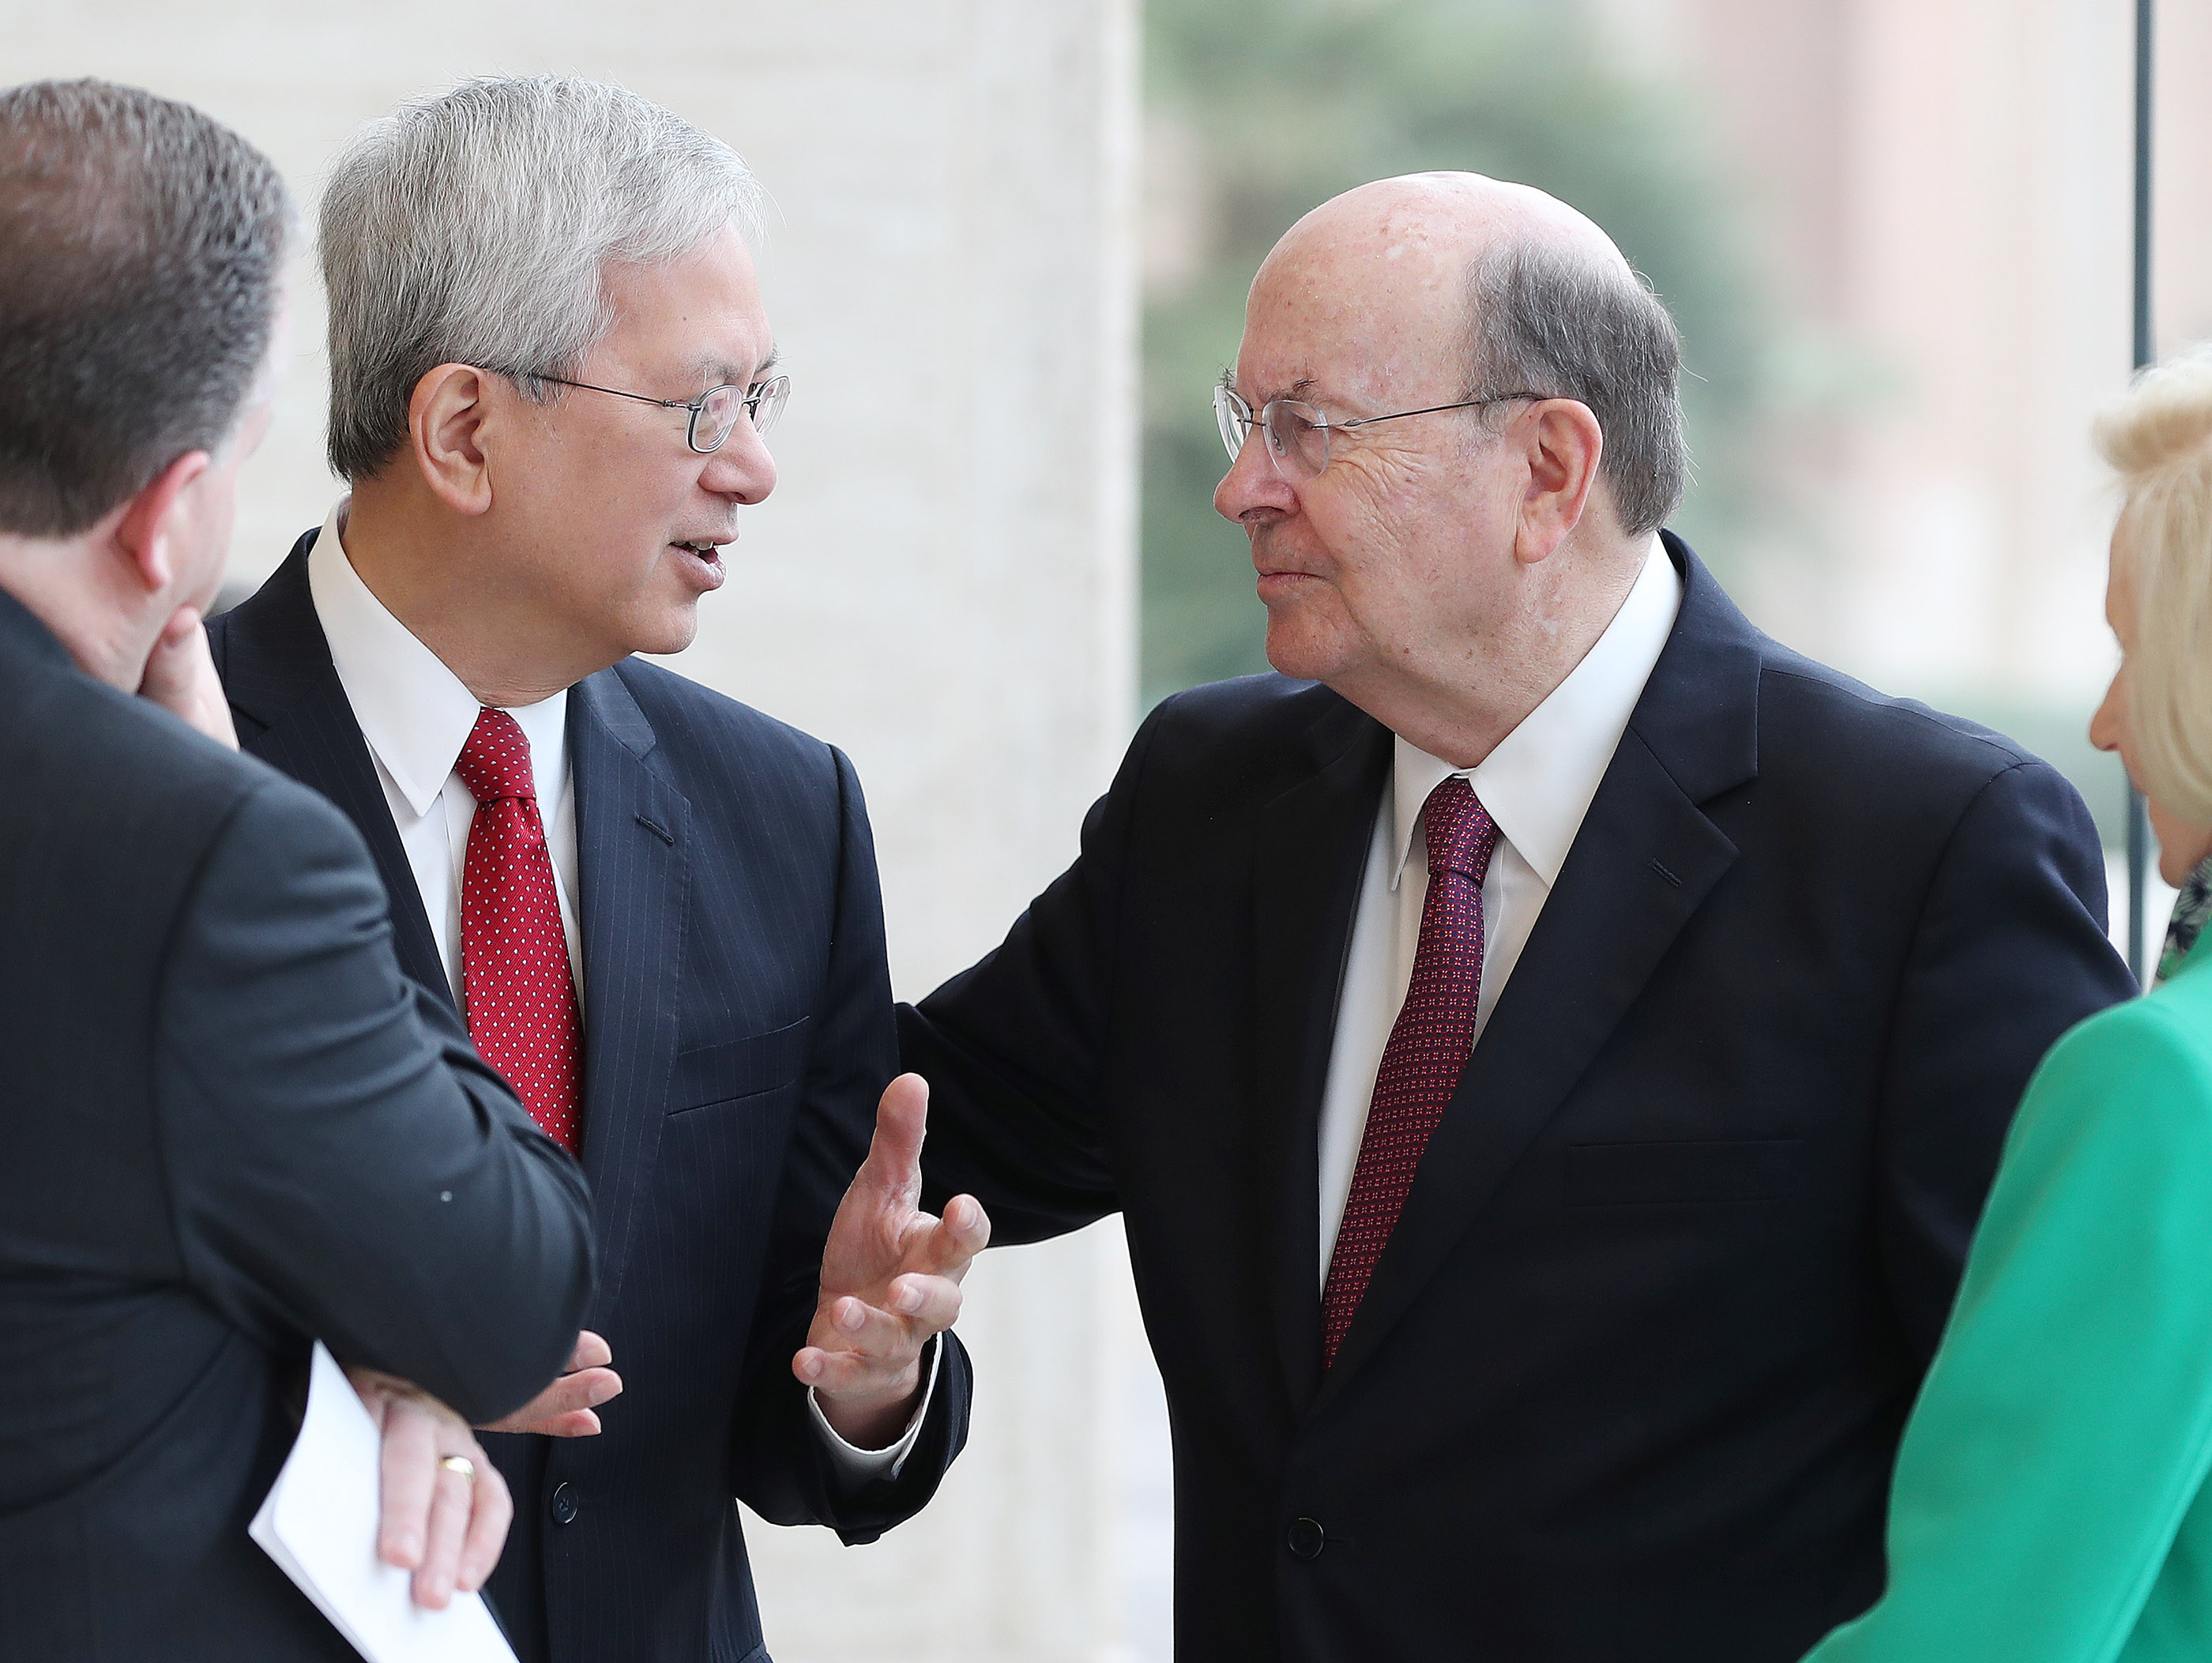 Elder Gerrit W. Gong and Elder Quentin L. Cook of the Quorum of the Twelve Apostles of The Church of Jesus Christ of Latter-day Saints, talk in the Rome Italy Temple visitors' center in Rome, Italy on Monday, March 11, 2019.